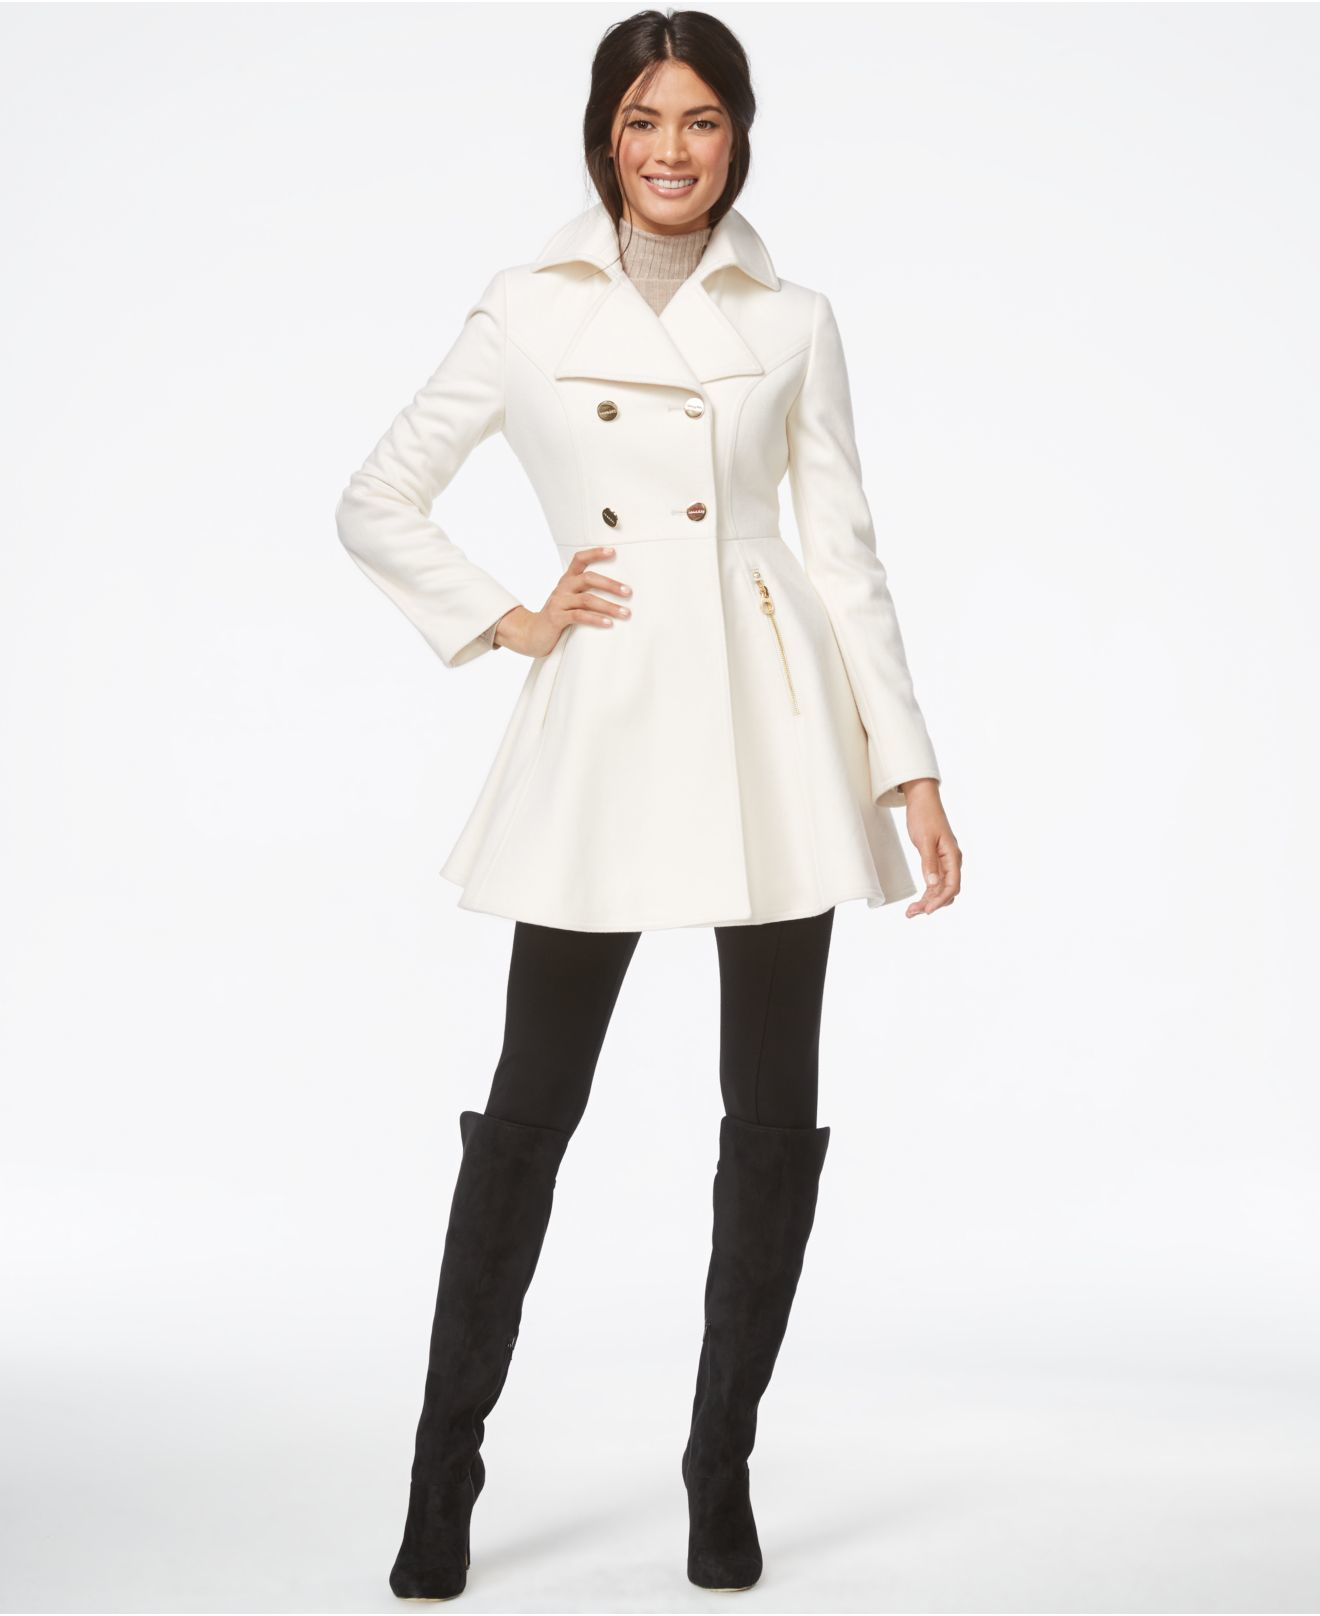 White dress coat - Shinecloth Red White Wool Dress Coats Women Double Ted